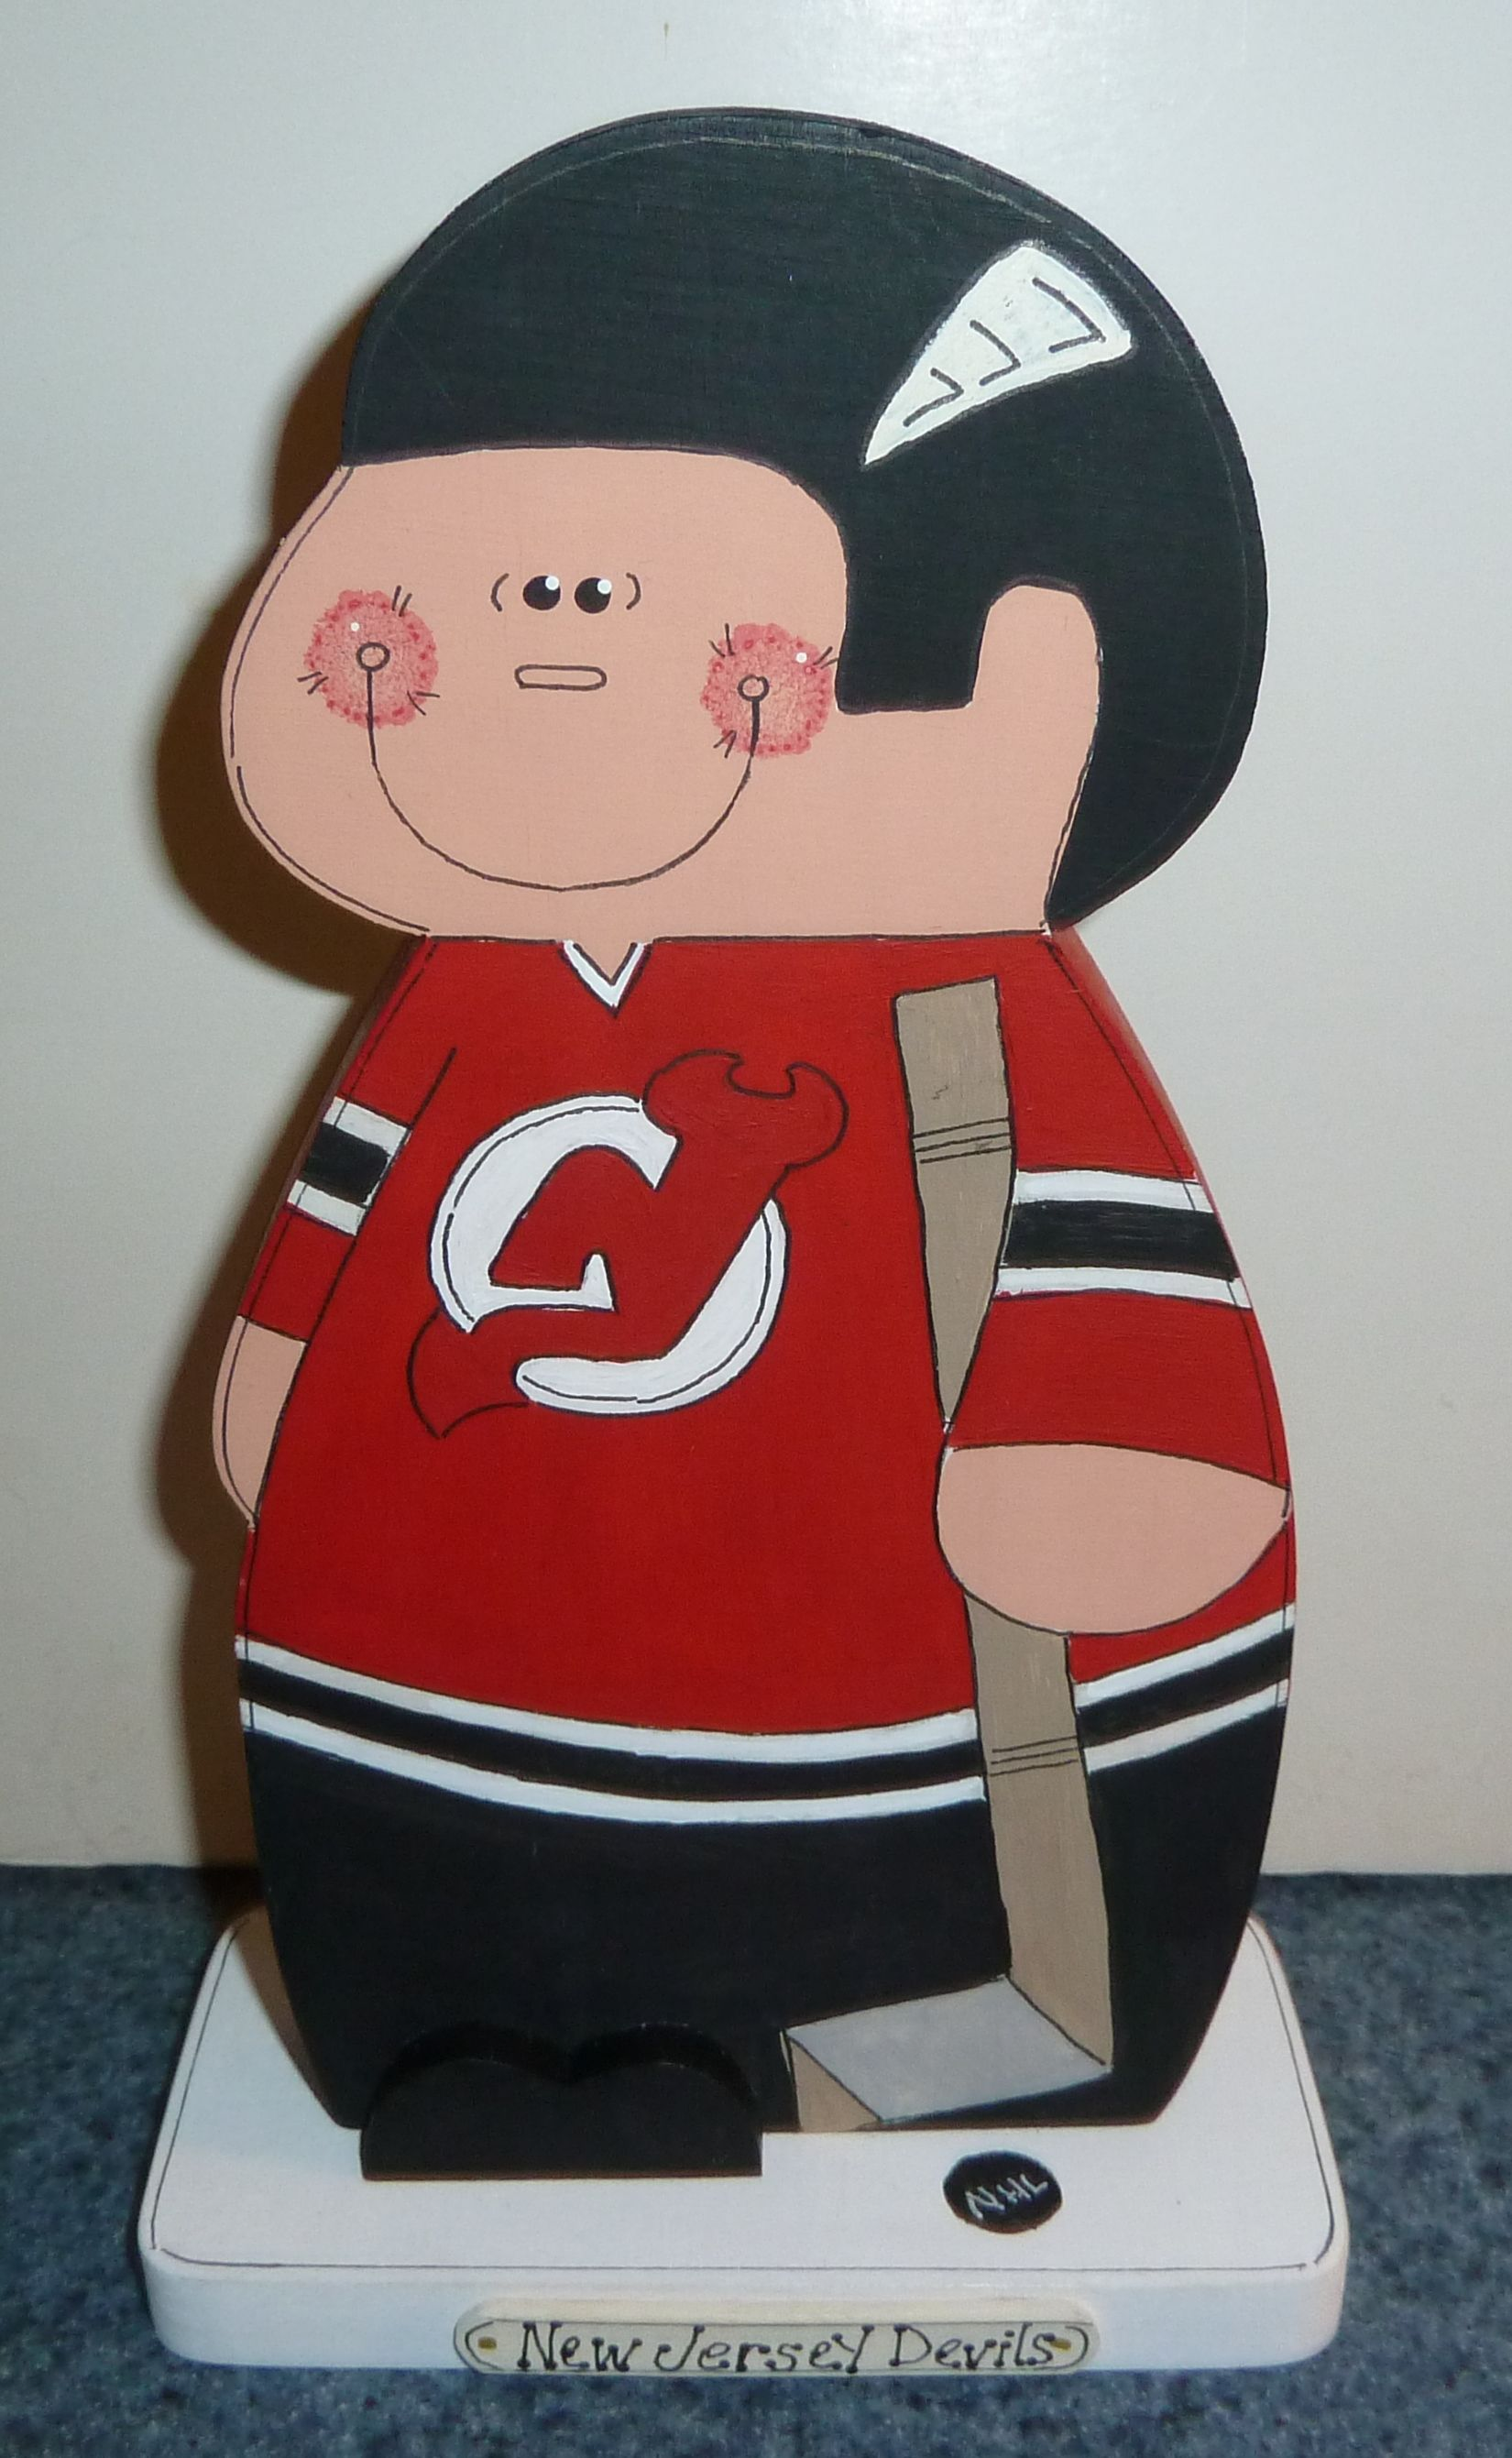 New York Devils hockey player. He is handmade, cut from wood, then handpainted with acrylic paints...great unique gift...